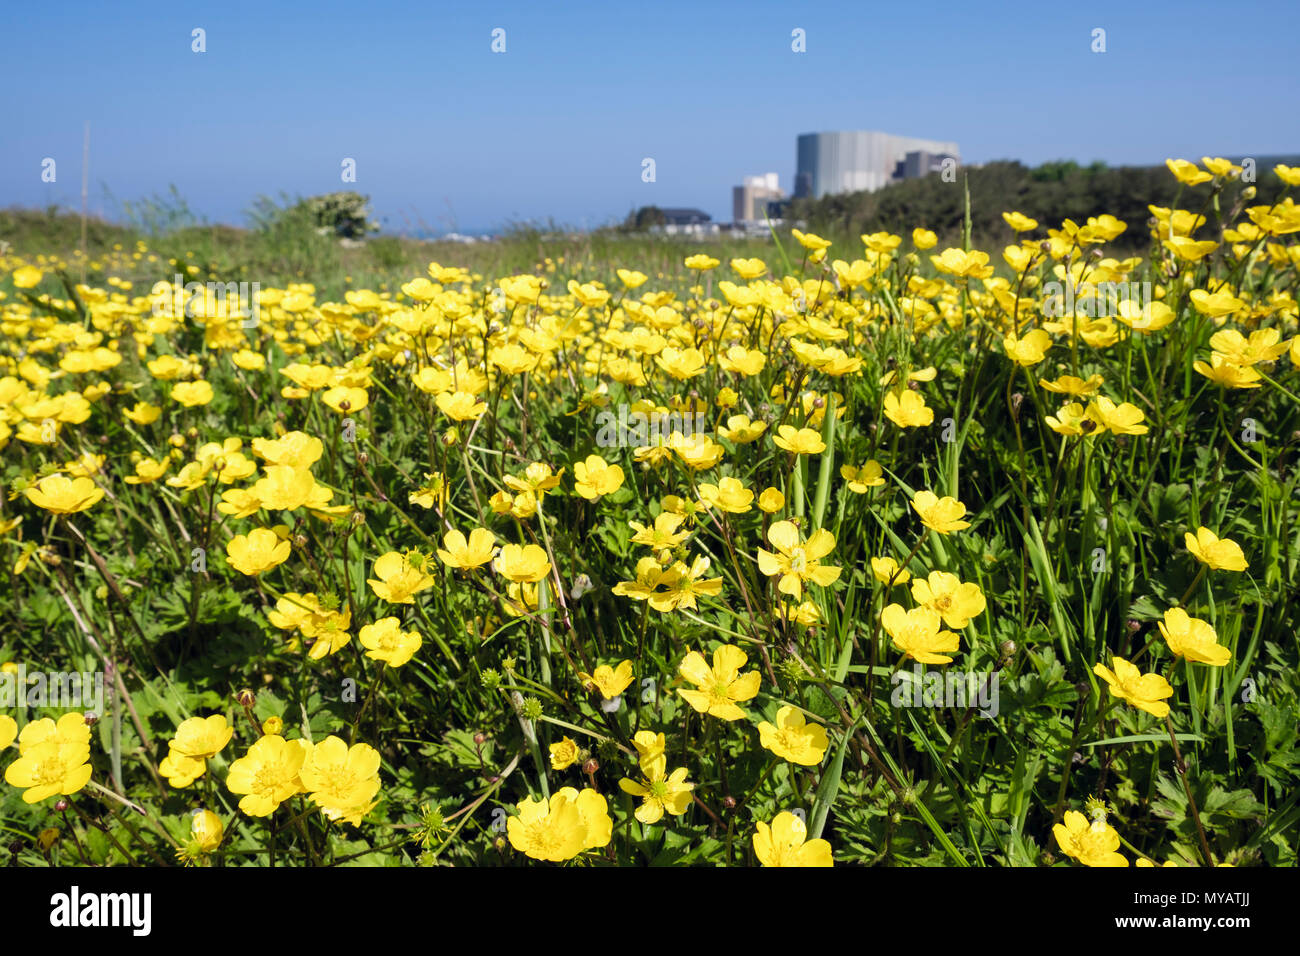 Yellow flowering Buttercups growing wild in countryside near Wylfa Nuclear Power Station. Cemaes, Isle of Anglesey, Wales, UK, Britain - Stock Image